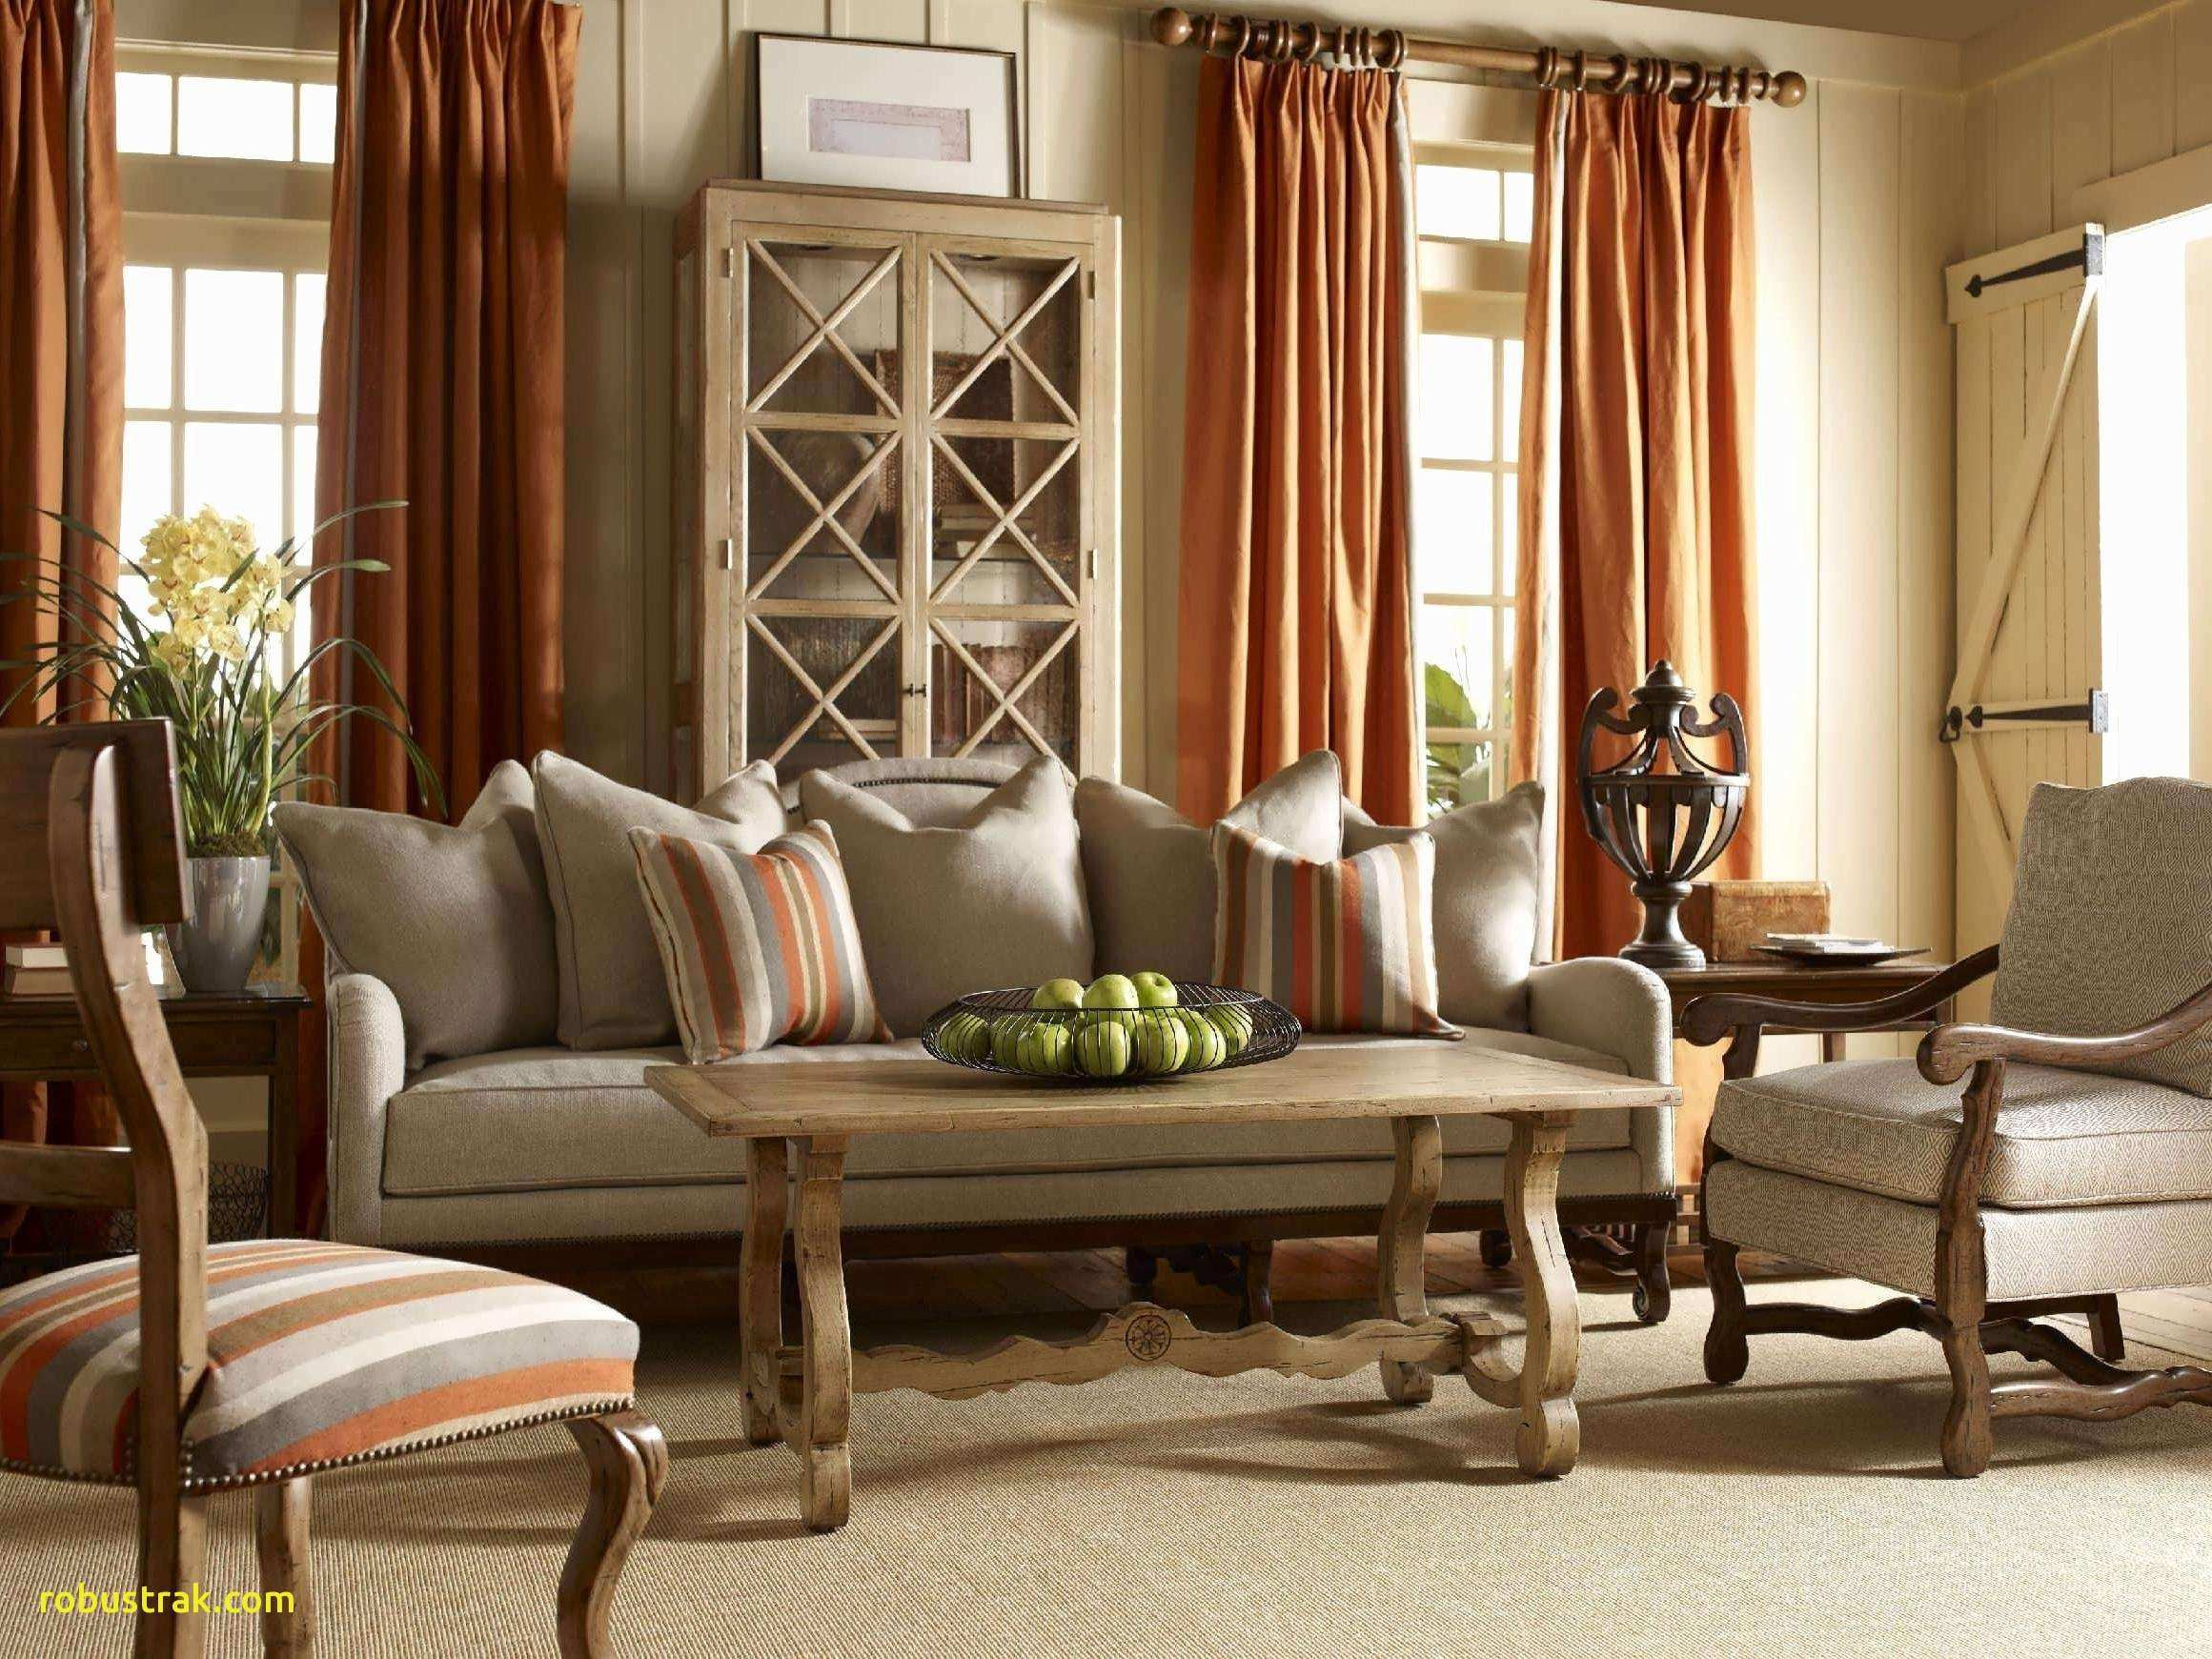 99 Country Home Decor Shots